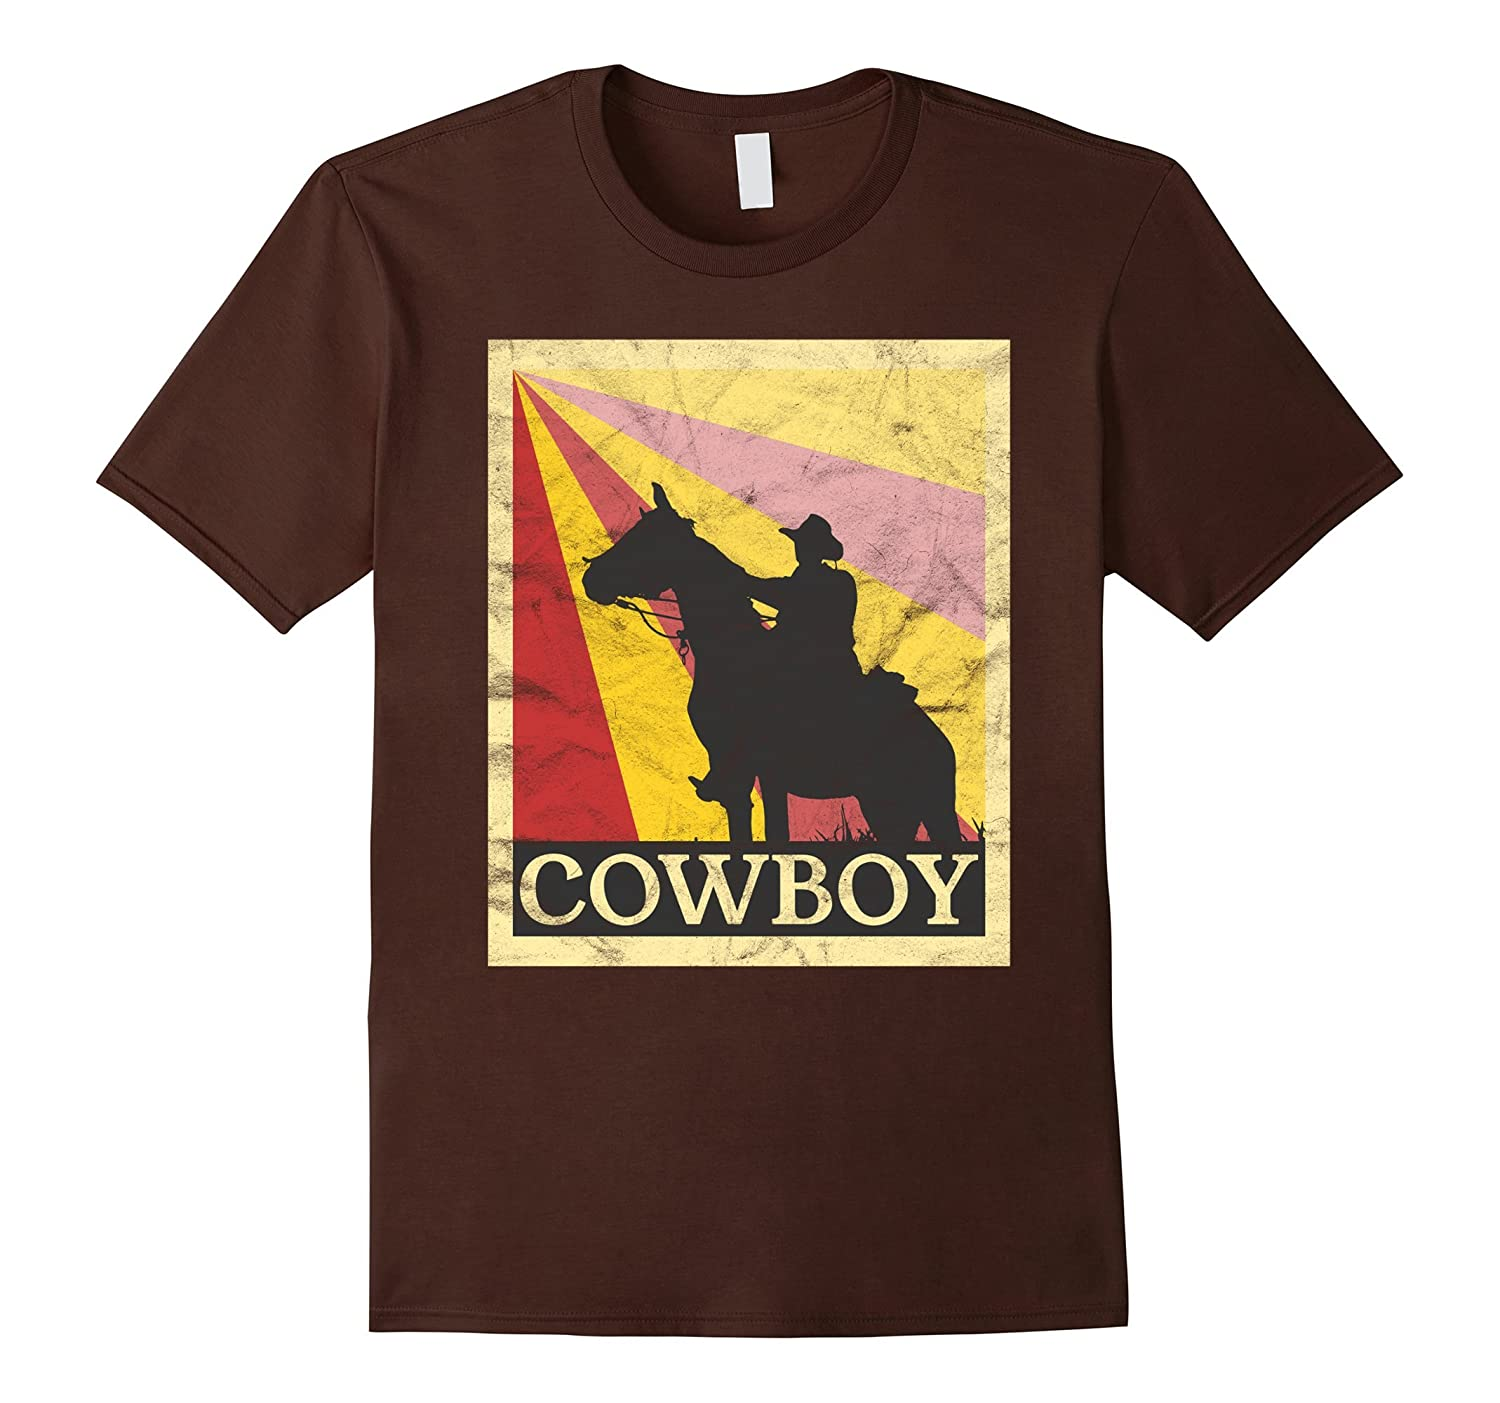 cowboy t shirt retro vintage style cl colamaga. Black Bedroom Furniture Sets. Home Design Ideas